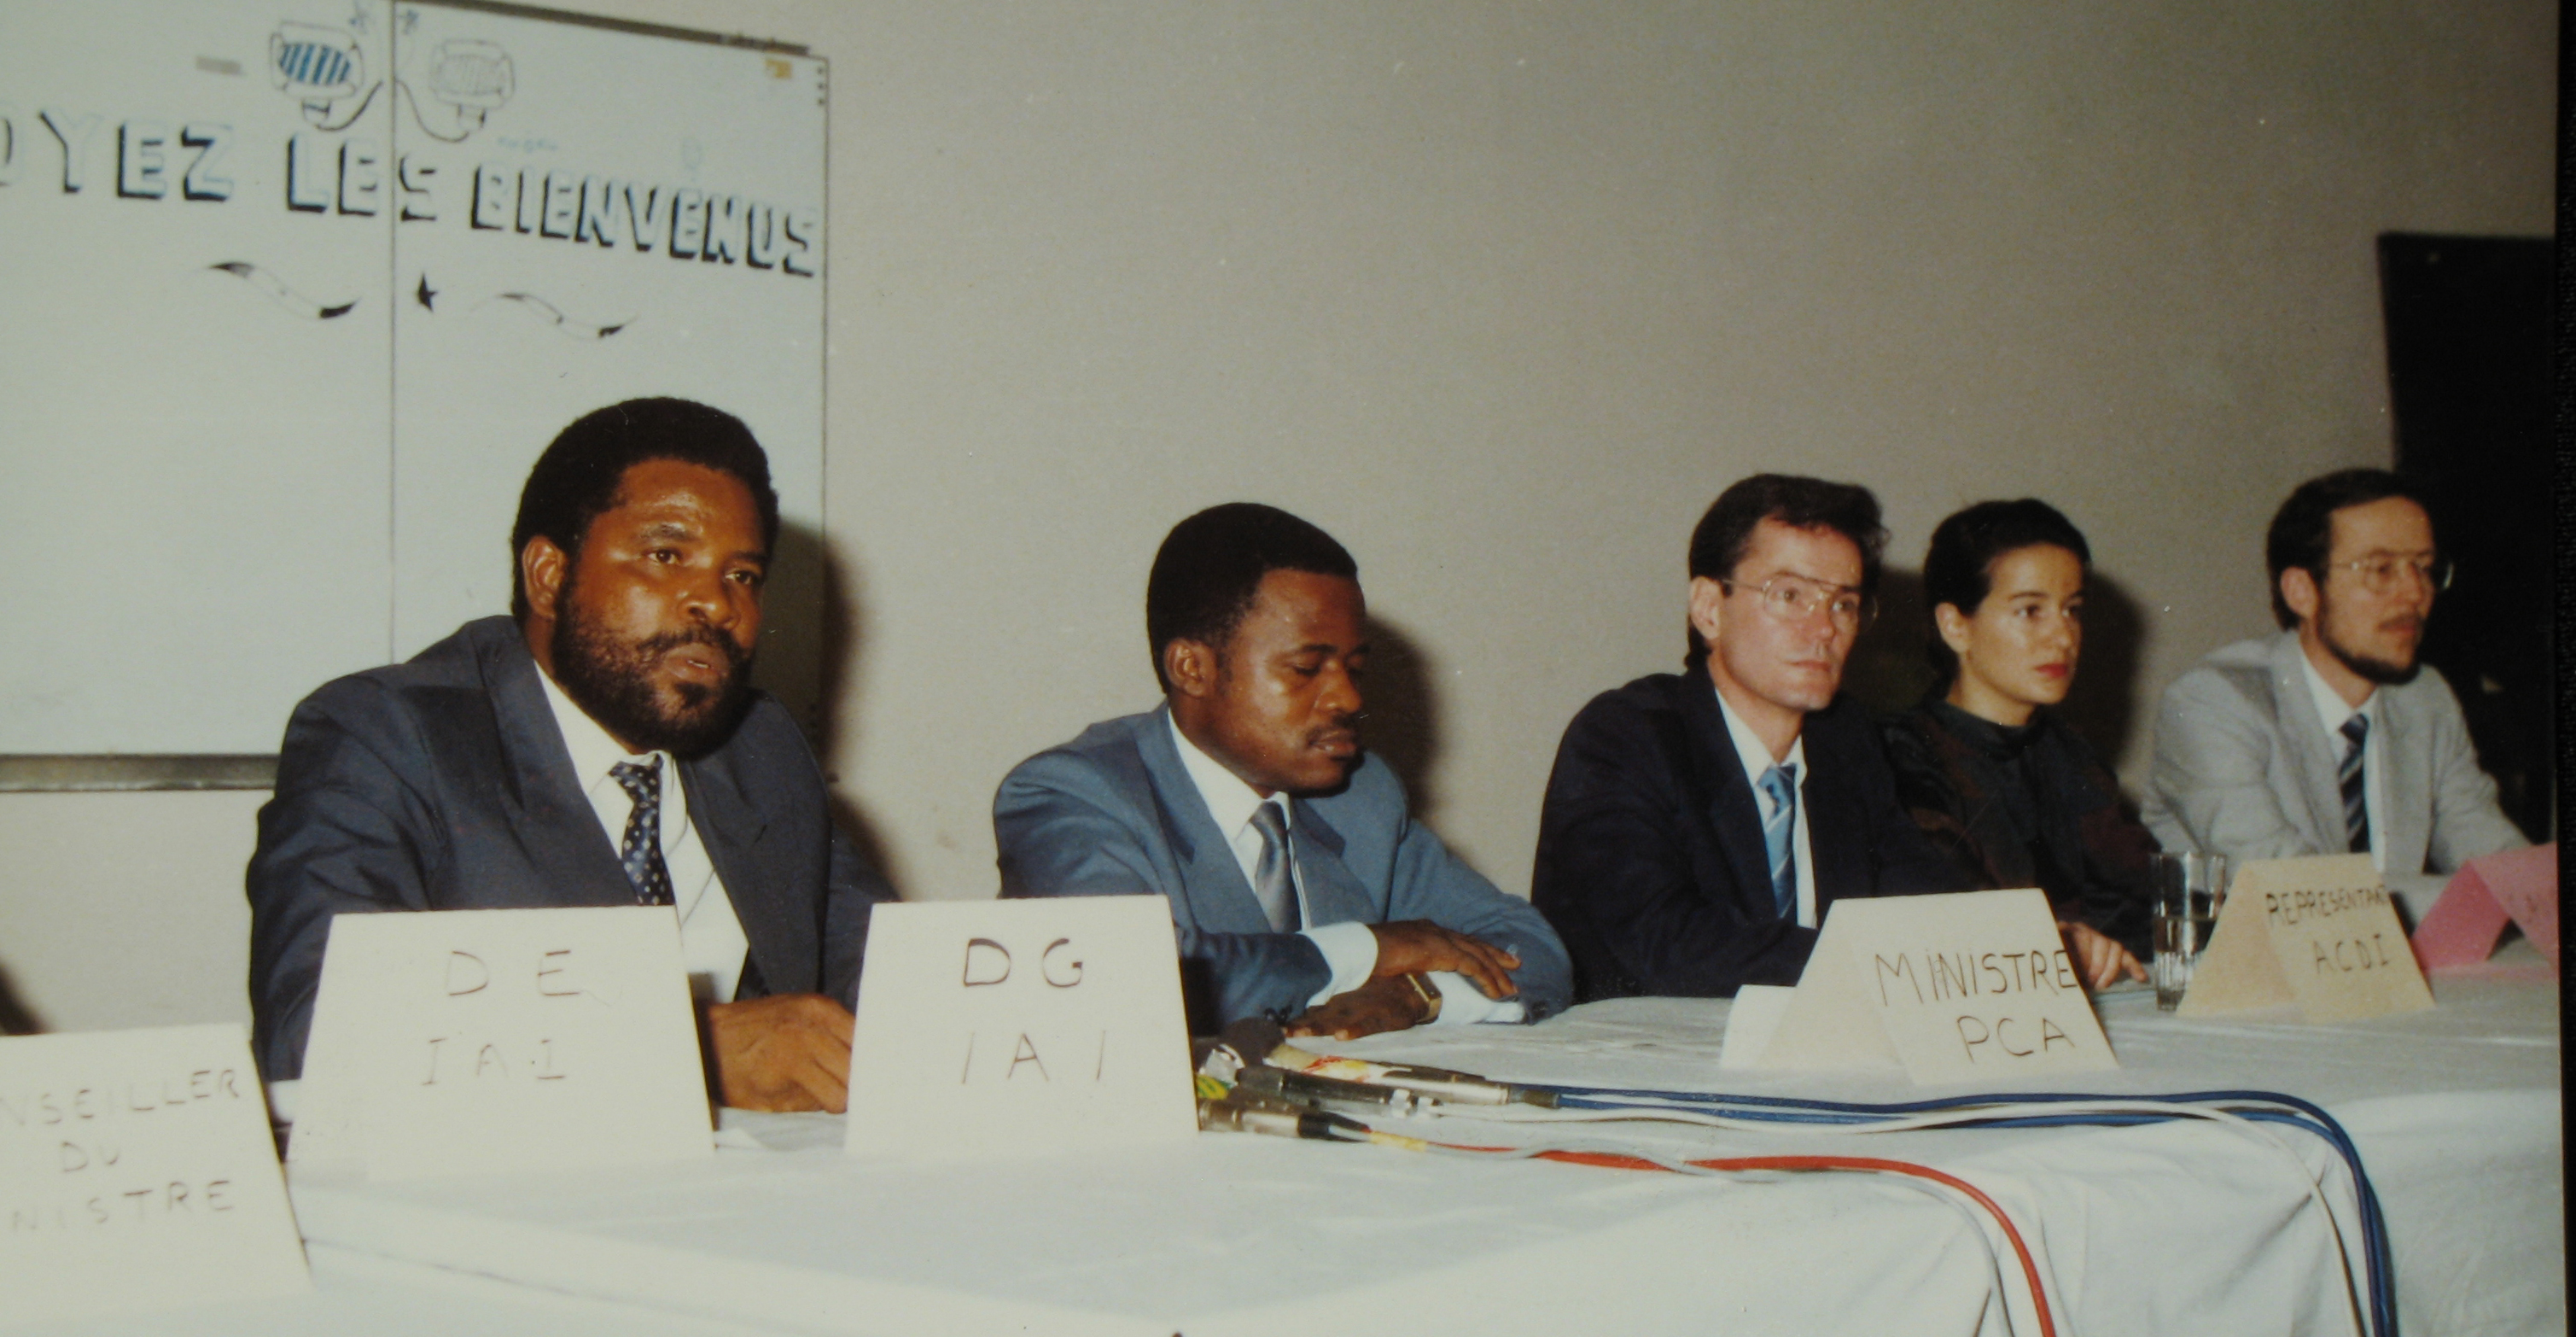 1991 02 - 4 weeks at IAI in Libreville (Gabon) to give some courses - here with Claude Frasson and others.jpg 4.3K